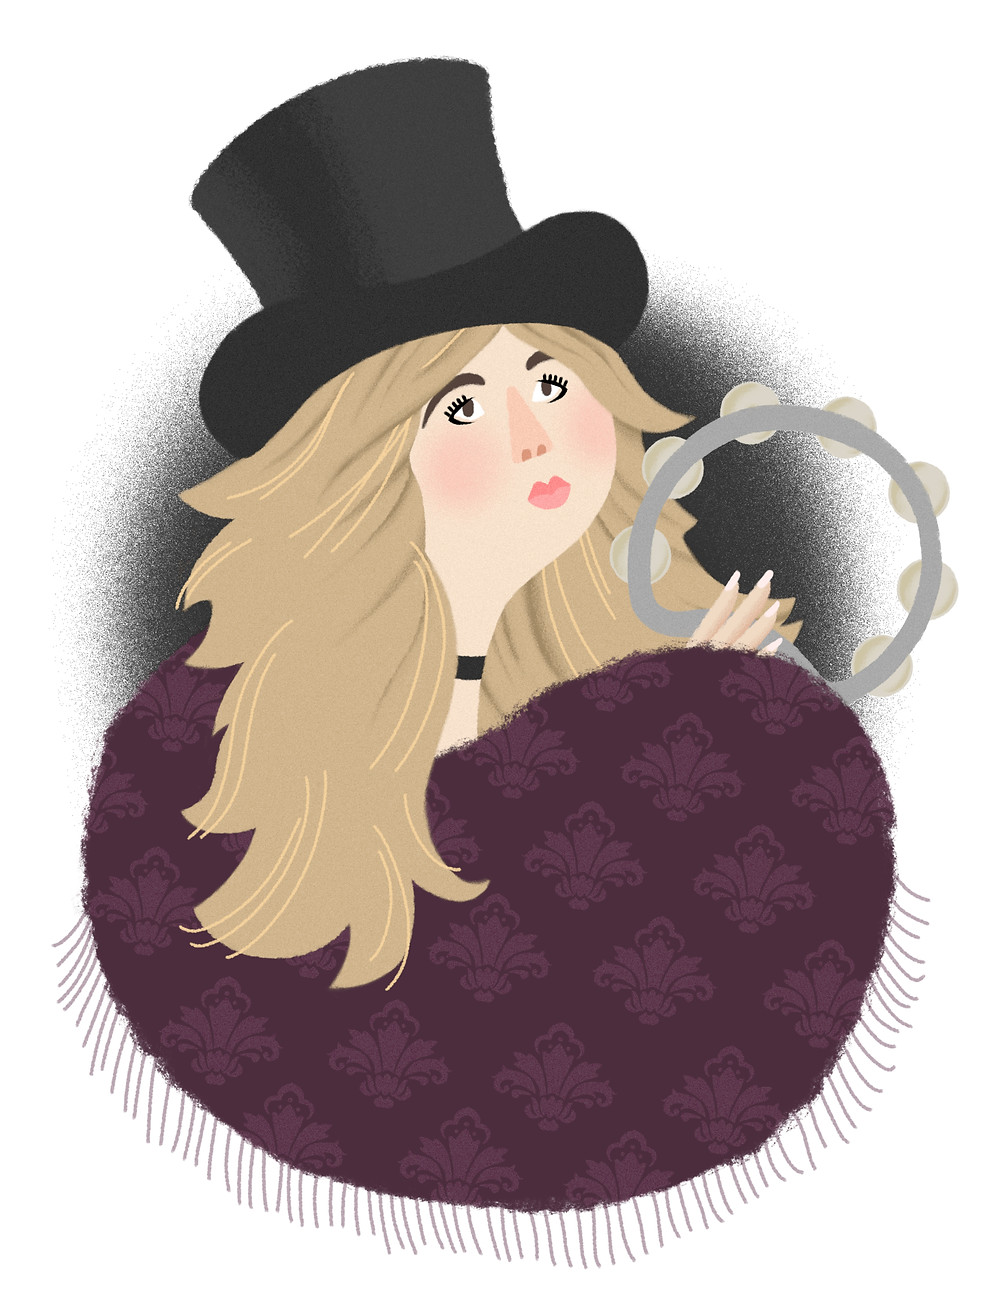 Portrait of Stevie Nicks wearing a black top hat, black choker necklace, wine-colored damask print fringe cape. She holds a tambourine and has long blonde hair.